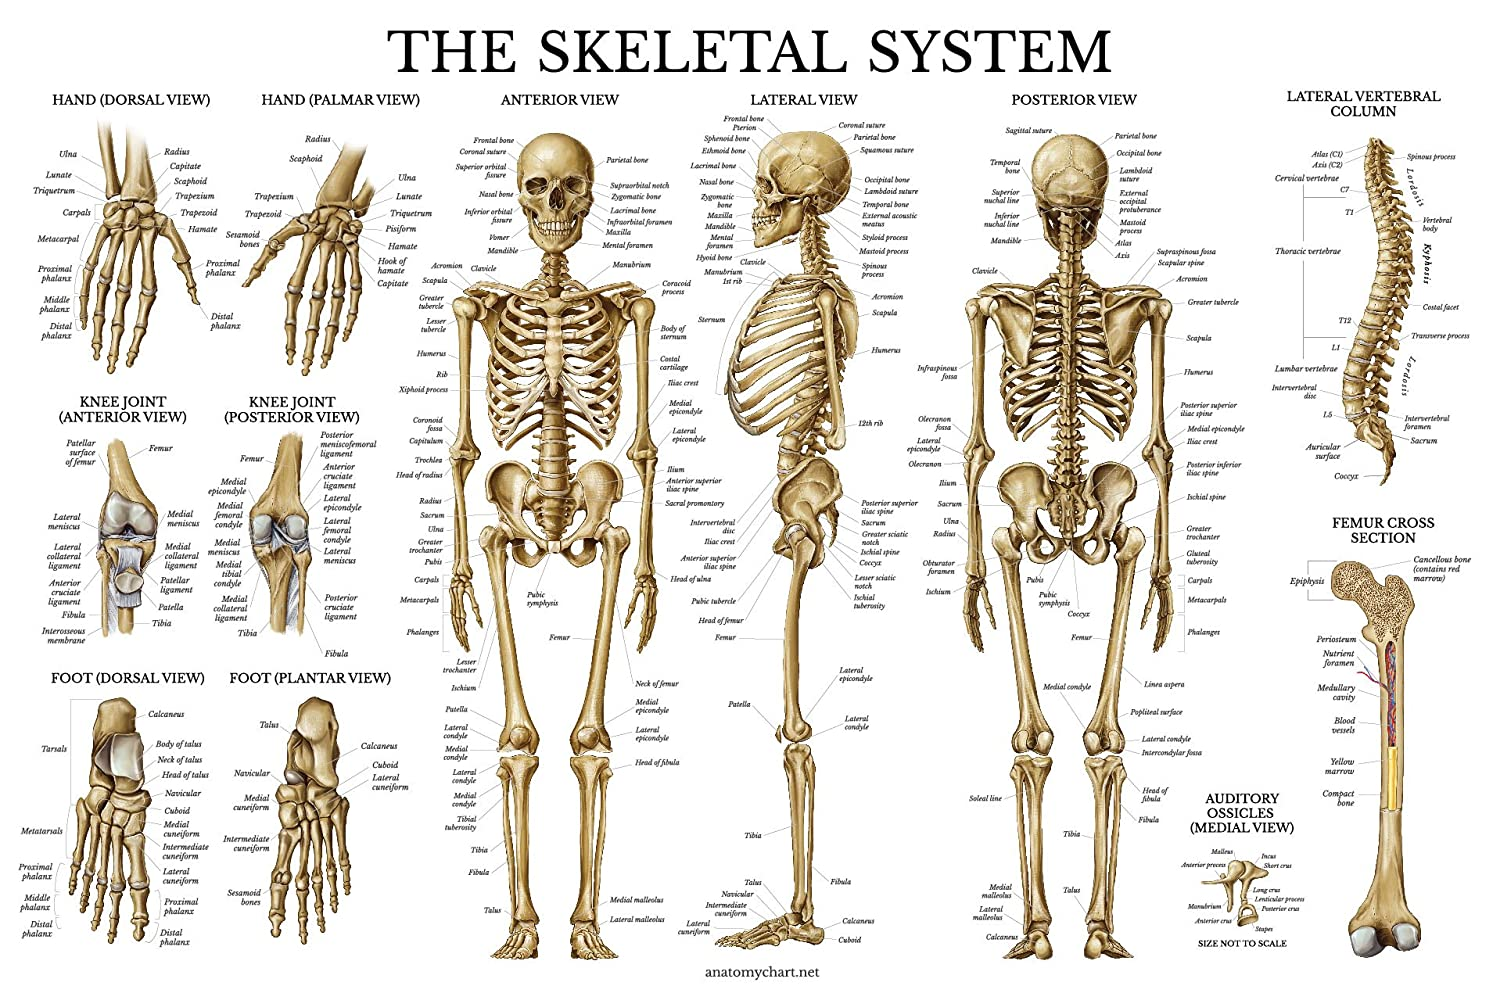 Skeletal System Anatomical Chart Laminated Human Skeleton Poster